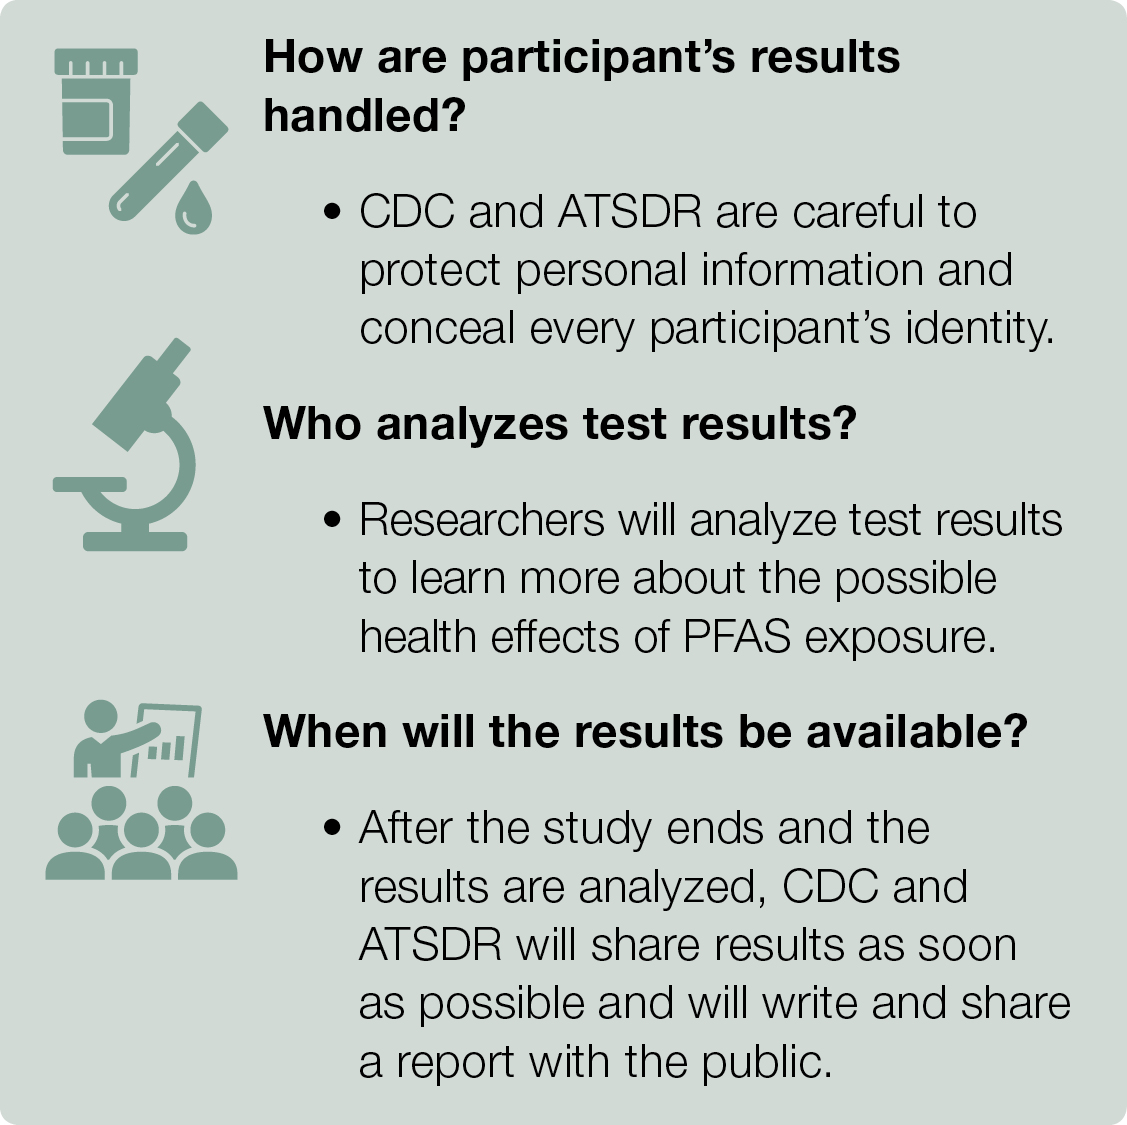 Text box describes how the participants' results are handled, who analyzes the tests, and when the results will be available.